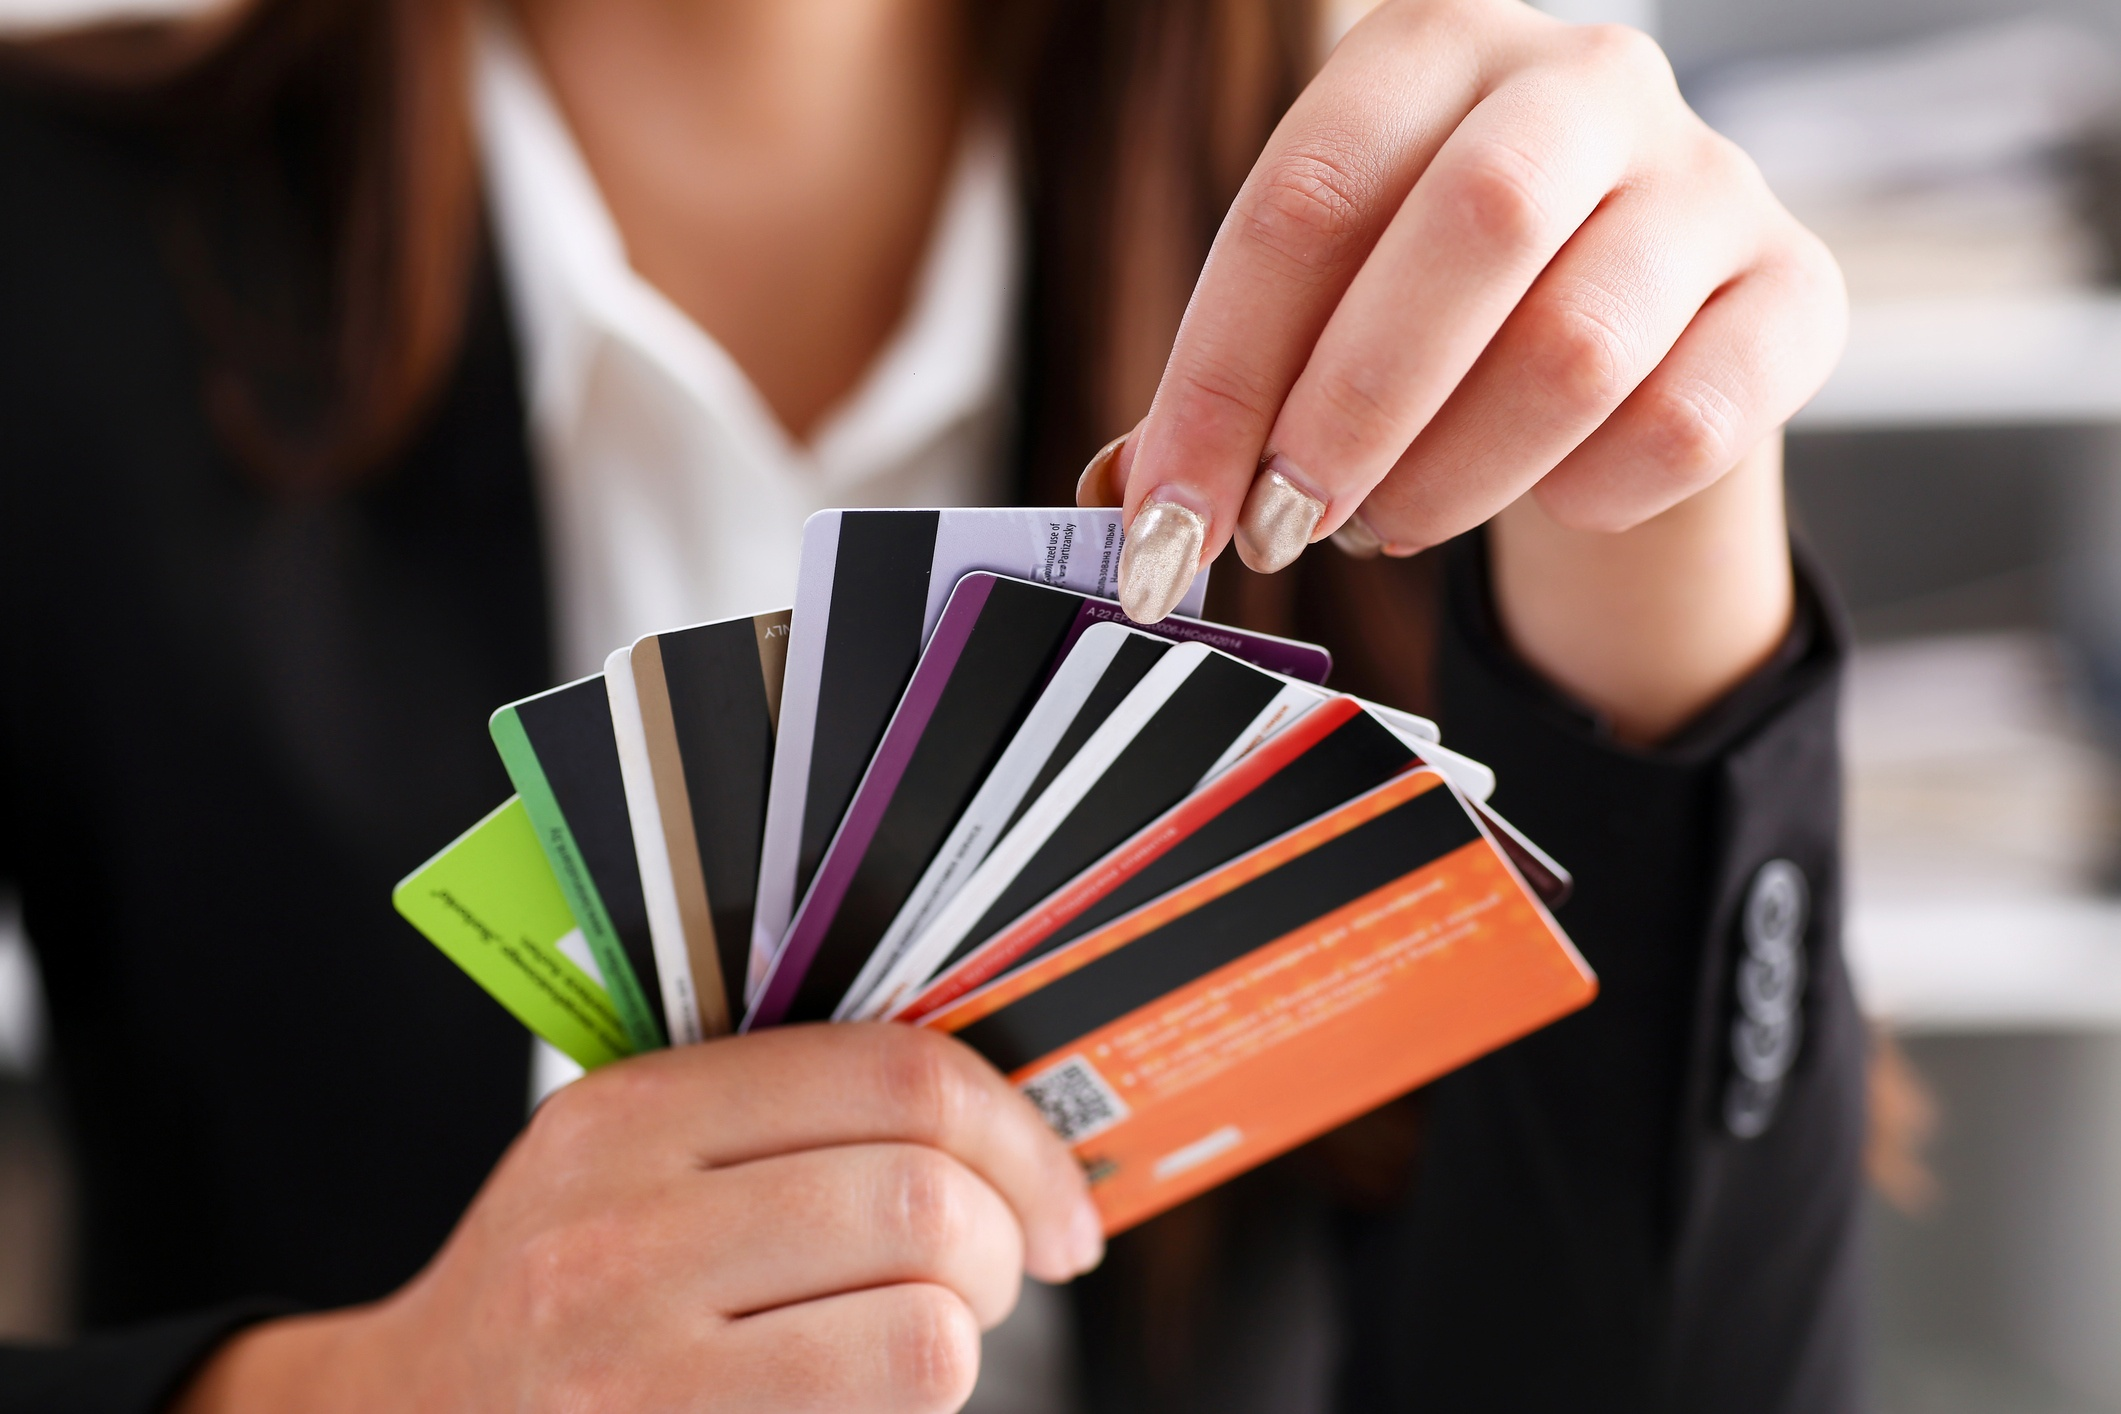 A person holding a fan of credit cards and choosing one.